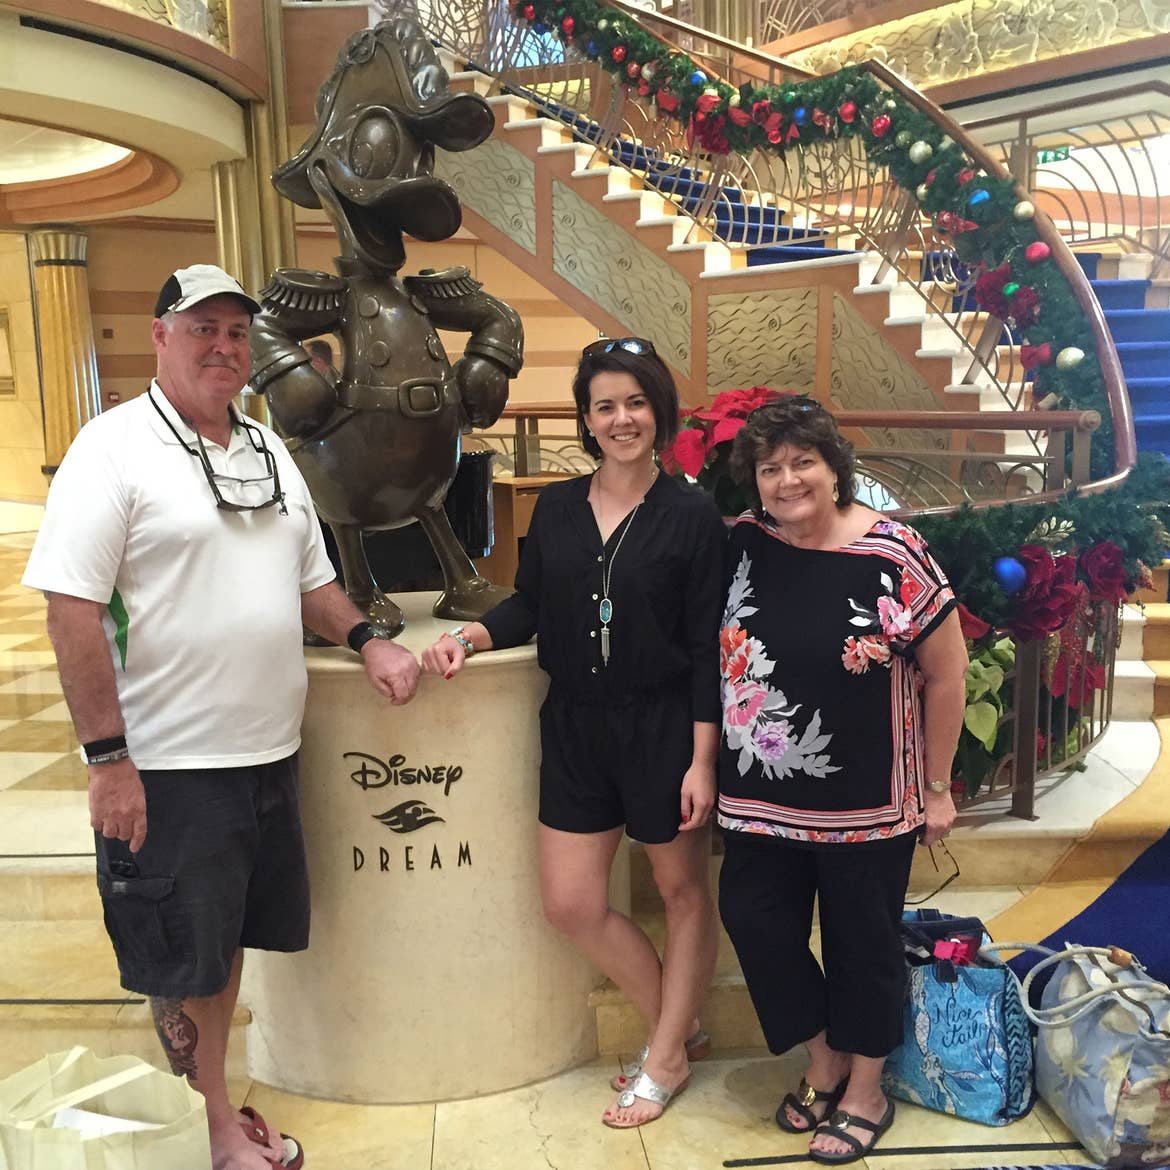 A man wearing a white and black cap, white polo and black shorts stands to the left of two women - both wearing black blouses and pants - and a bronze statue of Donald Duck on a pedestal that reads, 'Disney Dream.'